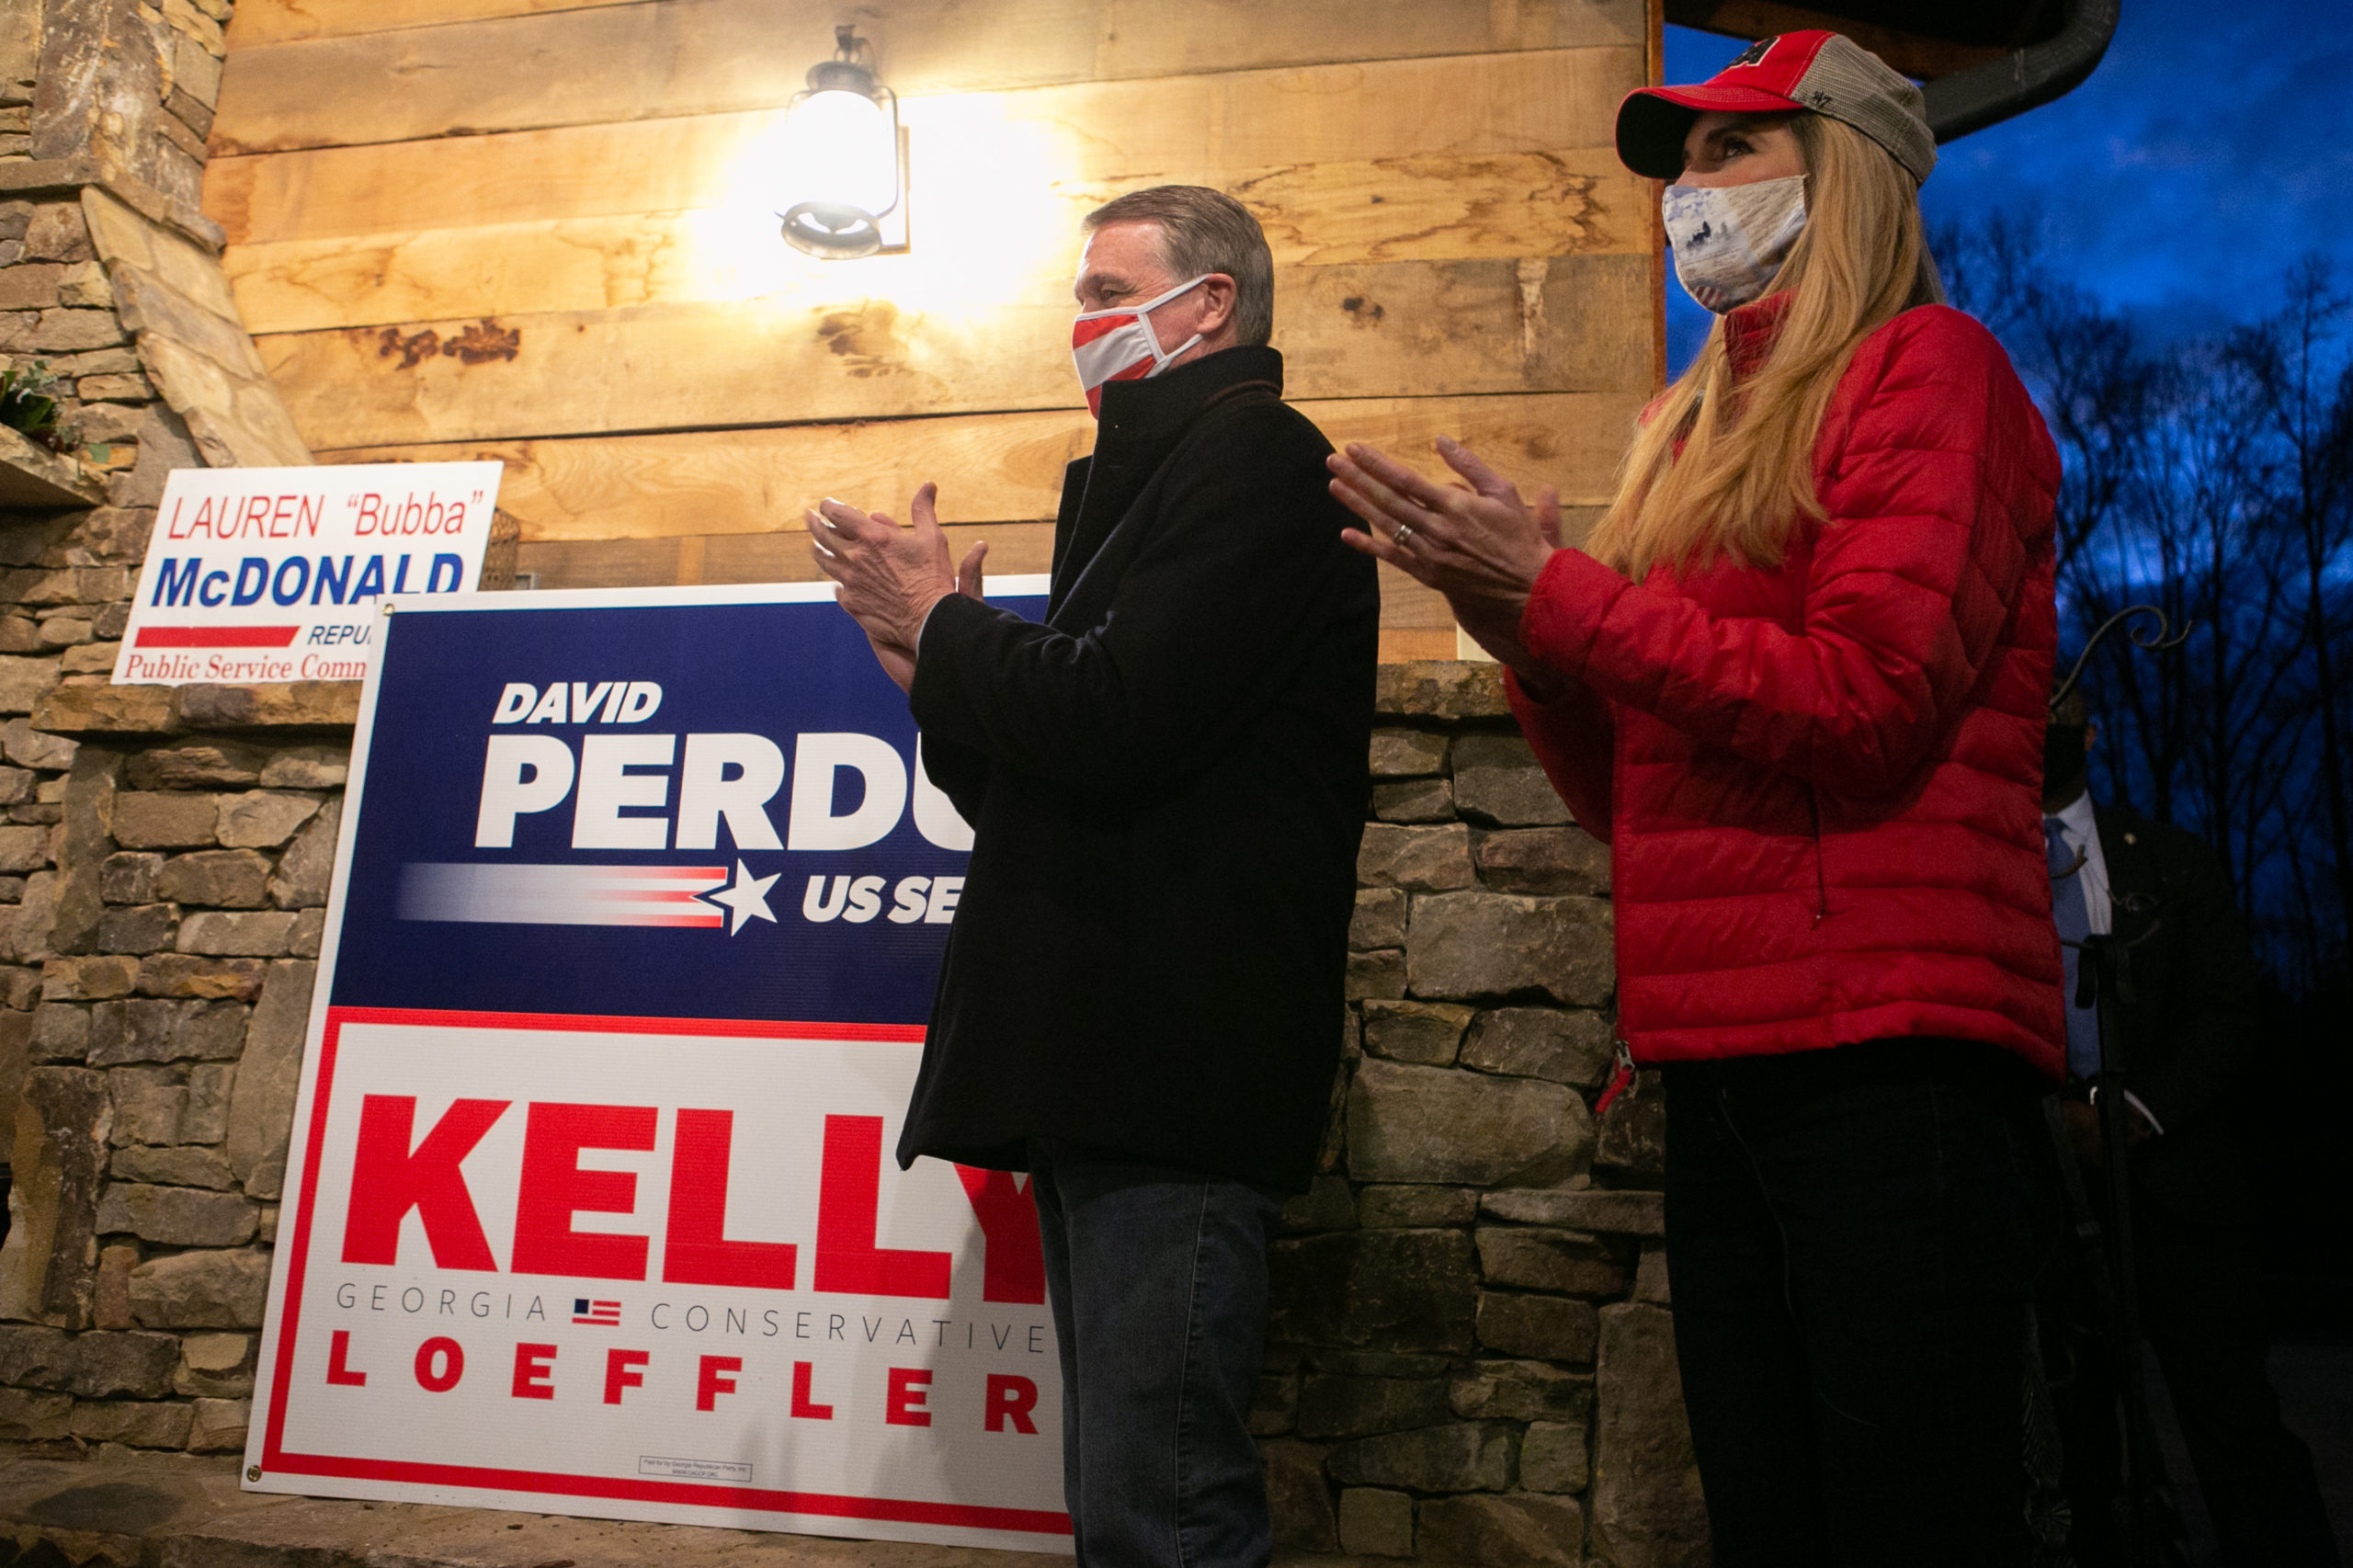 CUMMING, GA - DECEMBER 20: Georgia Republican Senate candidates David Perdue (R-GA) and Kelly Loeffler (R-GA) listen to former U.N. Ambassador Nikki Haley speak during a rally on December 20, 2020 in Cumming, Georgia. The Senate Firewall campaign event comes ahead of a crucial runoff election for Perdue and Loeffler on January 5th that will determine what party controls the United States Senate. (Photo by Jessica McGowan/Getty Images)